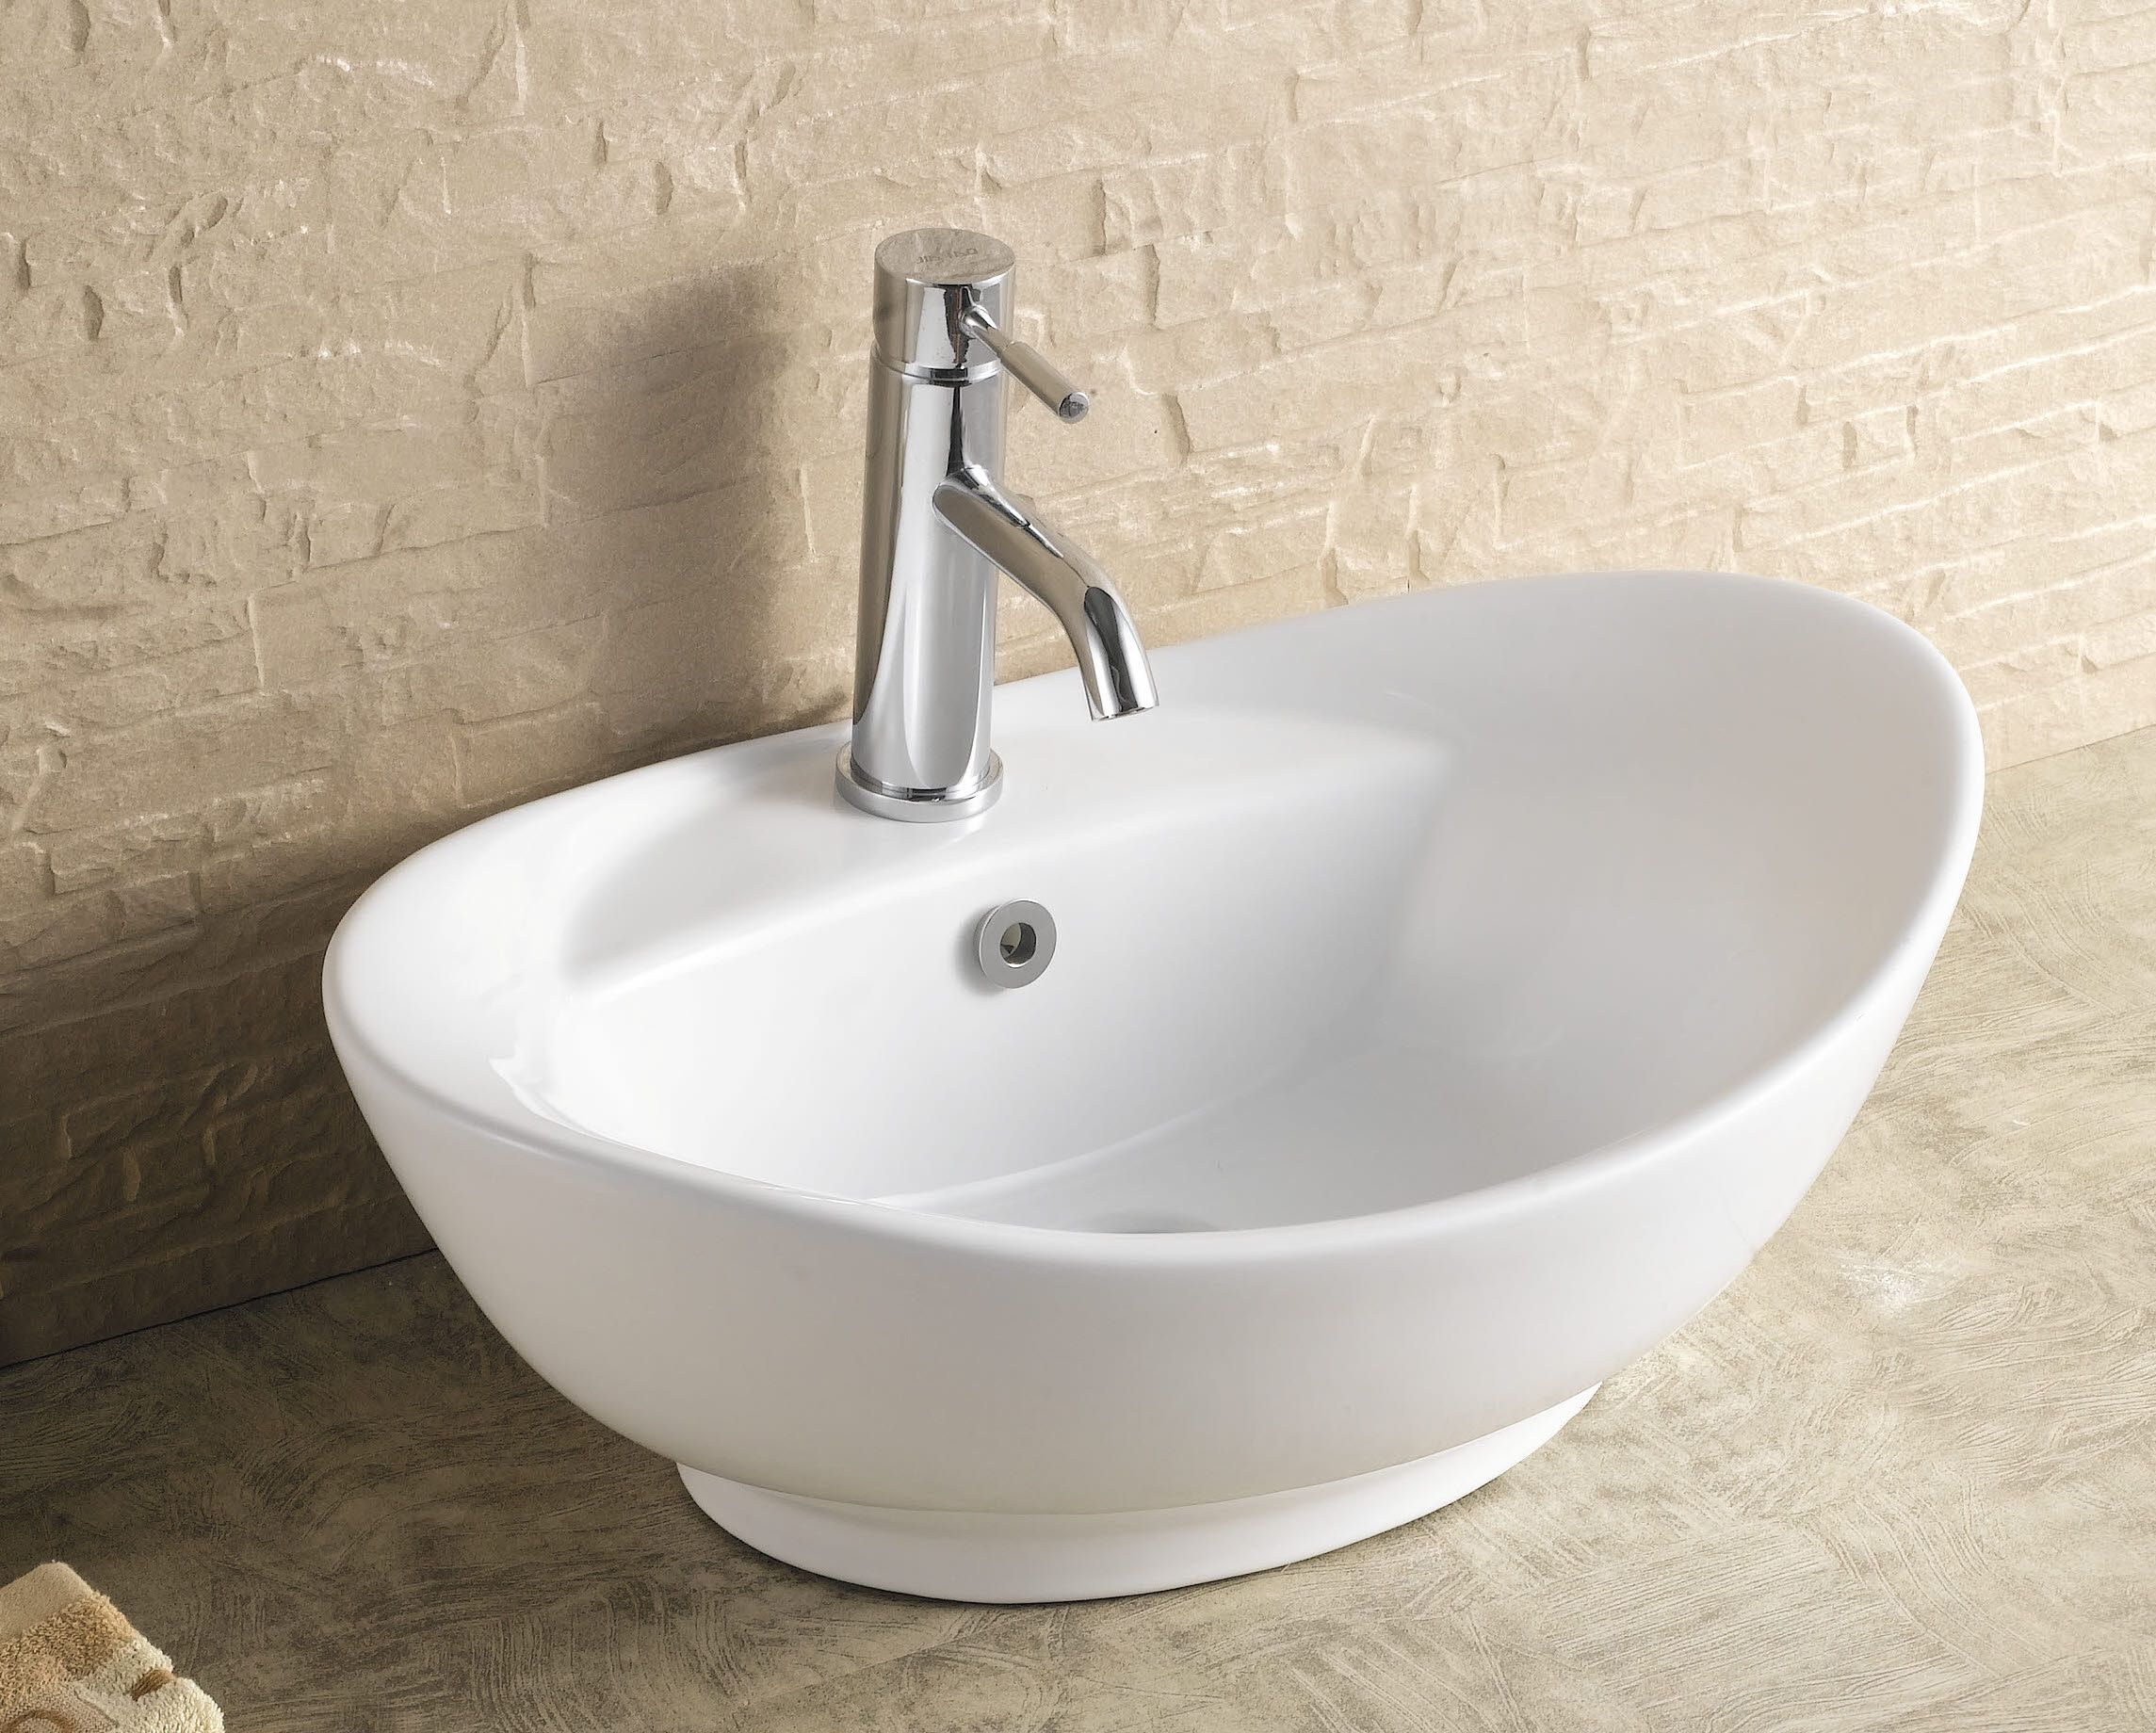 S O S Rooter Of San Diego 619 717 8427 Sinks